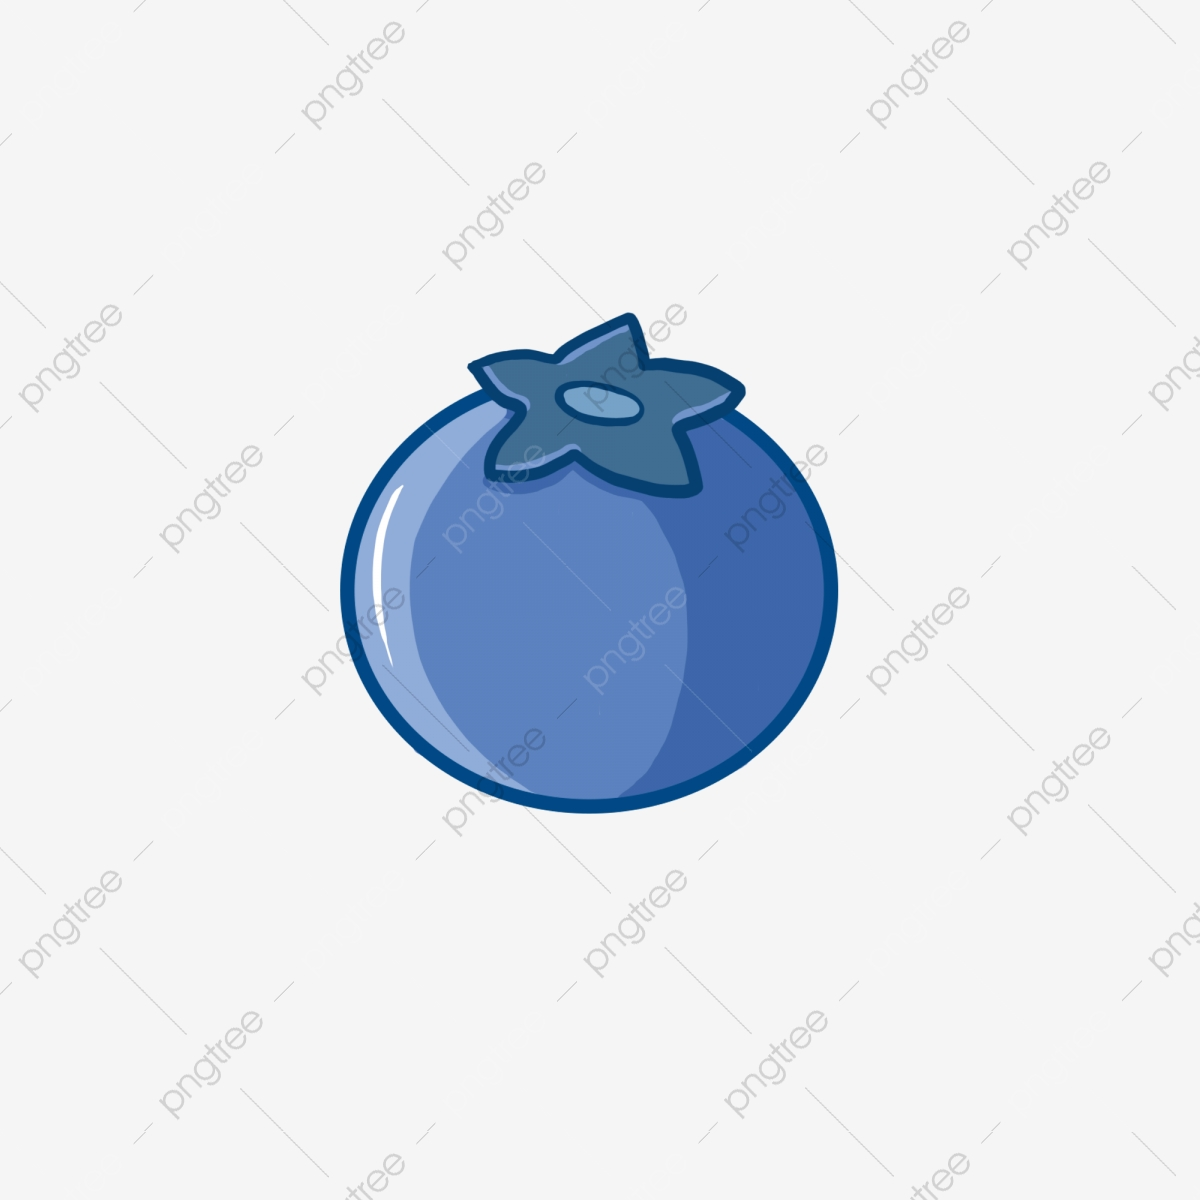 Icon element png fruit. Blueberry clipart single